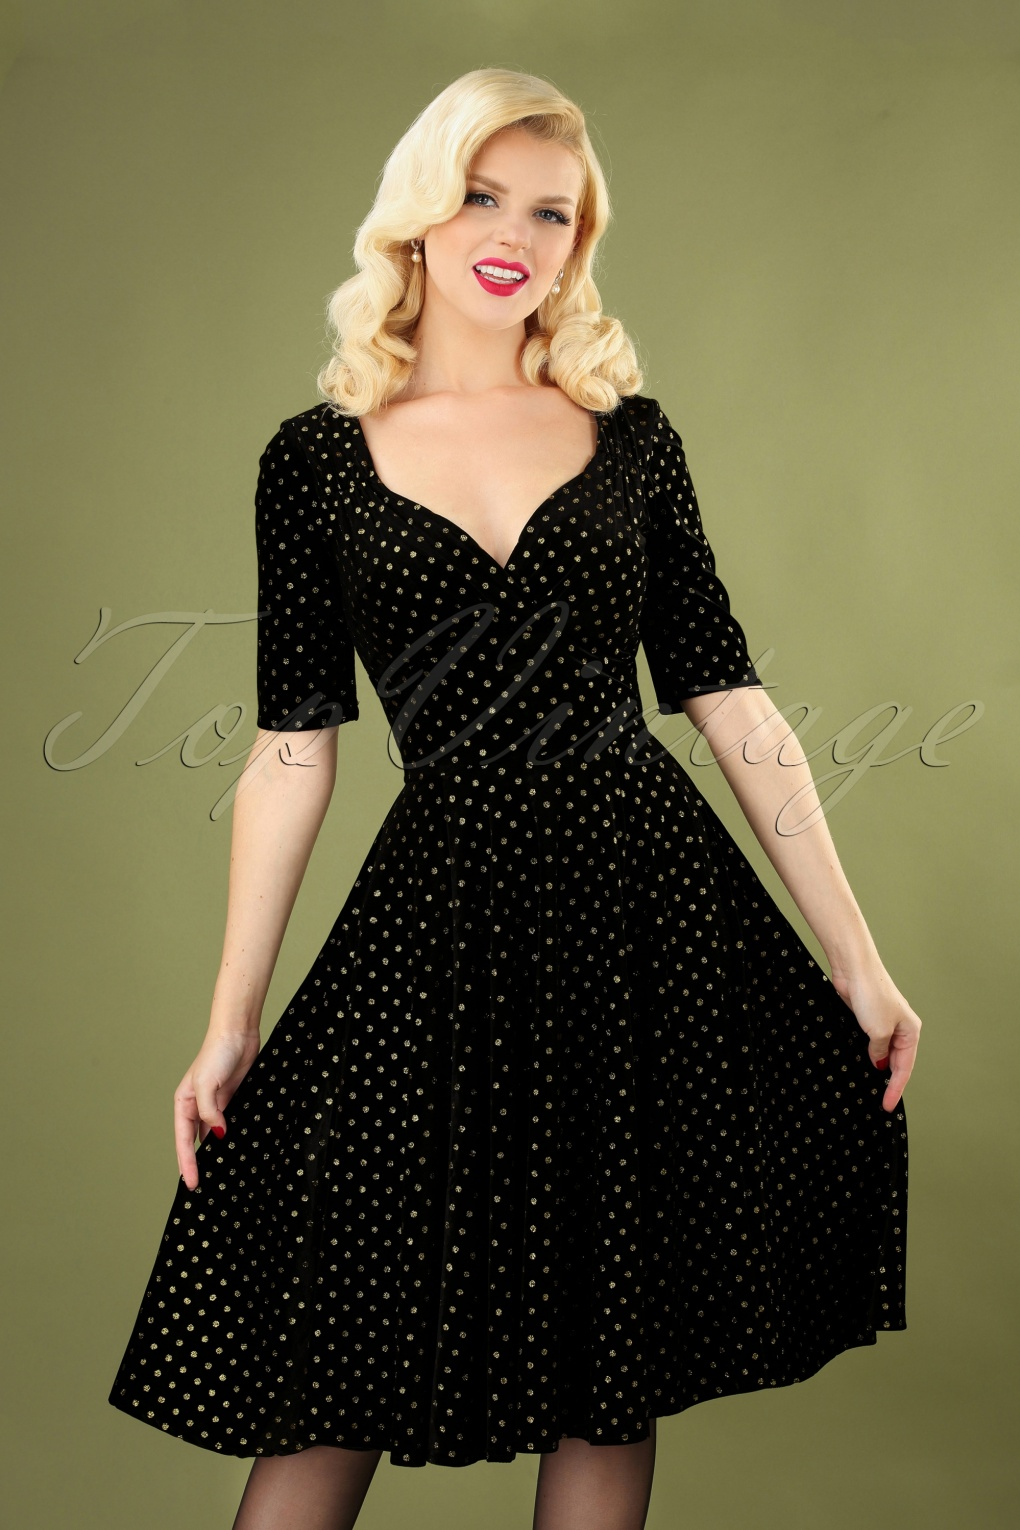 1940s Cocktail Dresses, Party Dresses 50s Trixie Golden Polka Velvet Doll Swing Dress in Black £61.99 AT vintagedancer.com